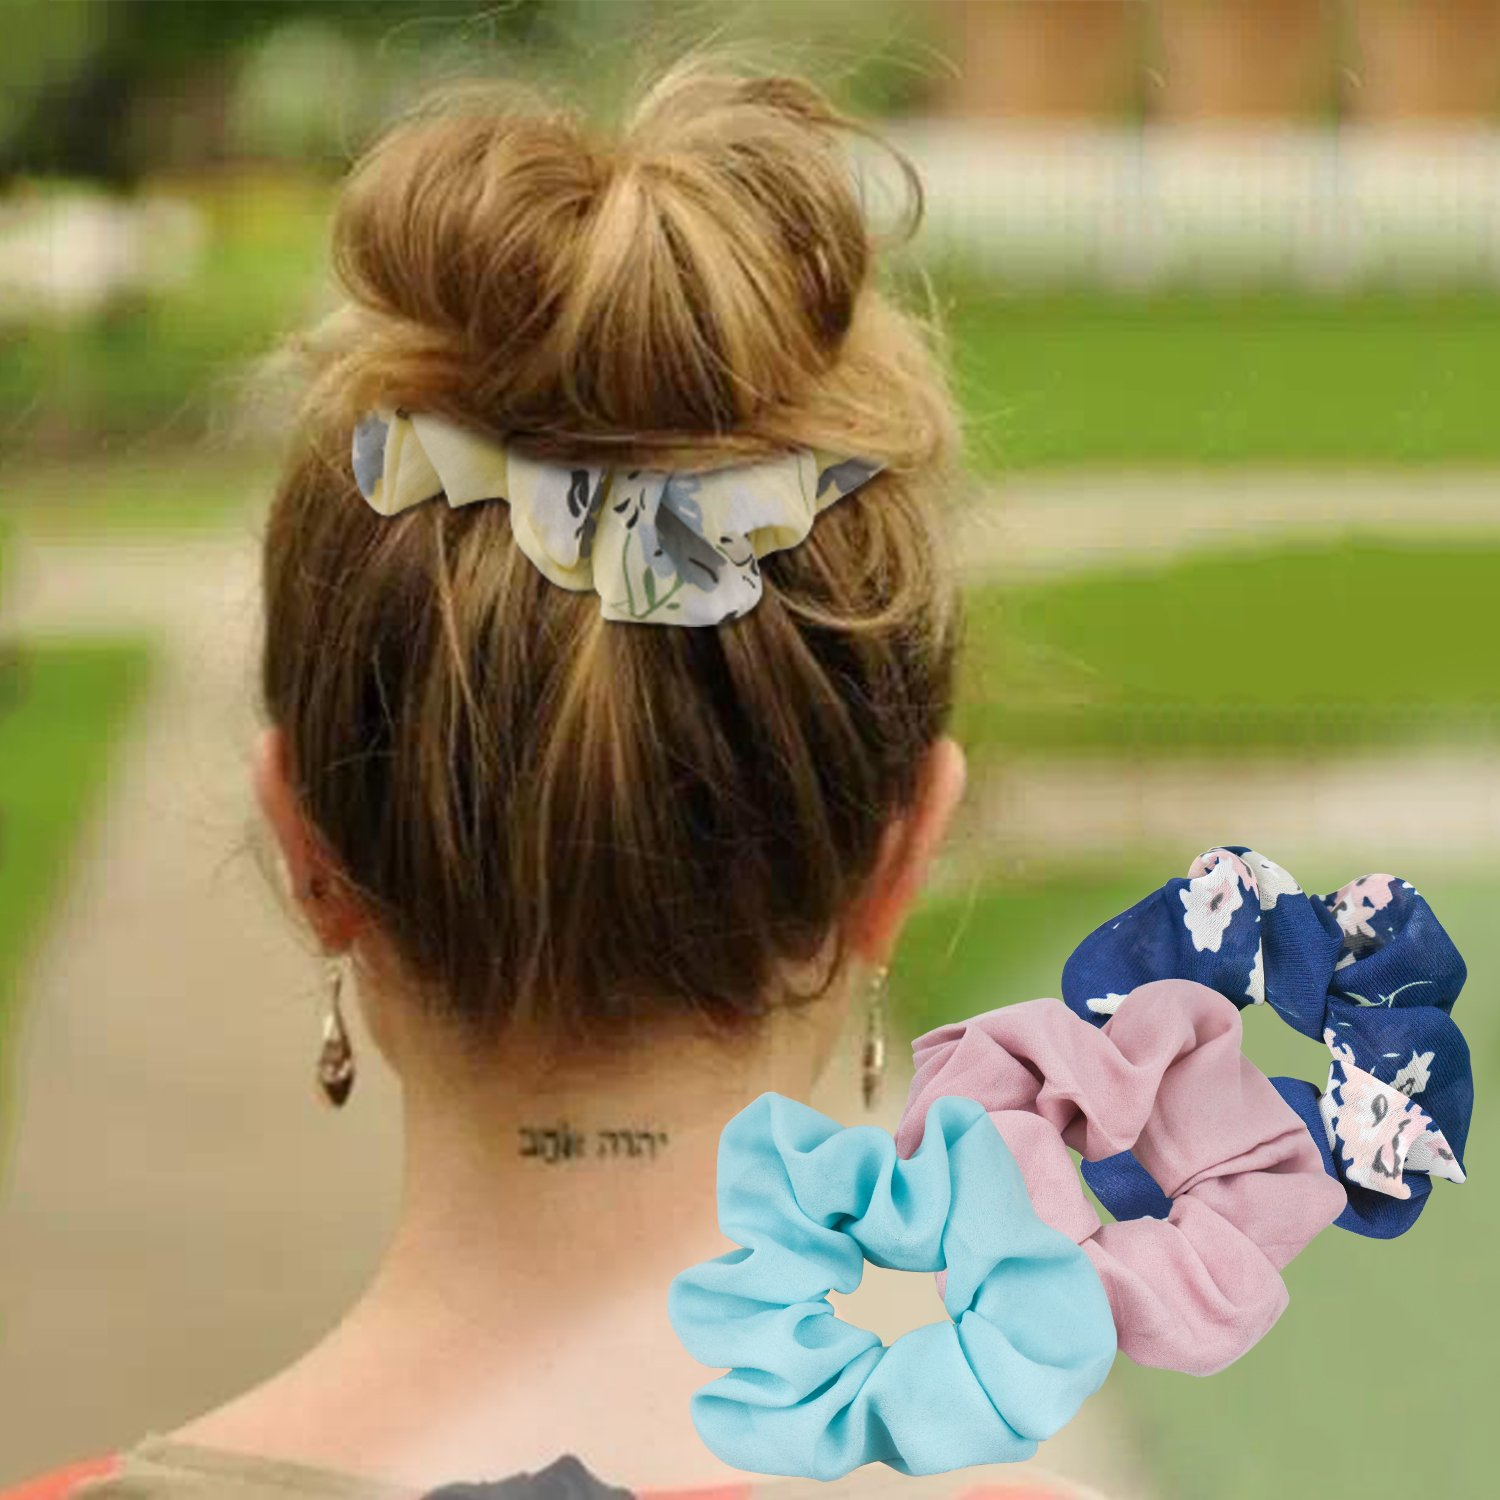 EAONE 16 Pieces Chiffon Hair Scrunchies Flower Hair Scrunchies Ties Hair Bobbles Ponytail Holder with Pouch Bag for Women Girls, 16 Colors by EAONE (Image #5)